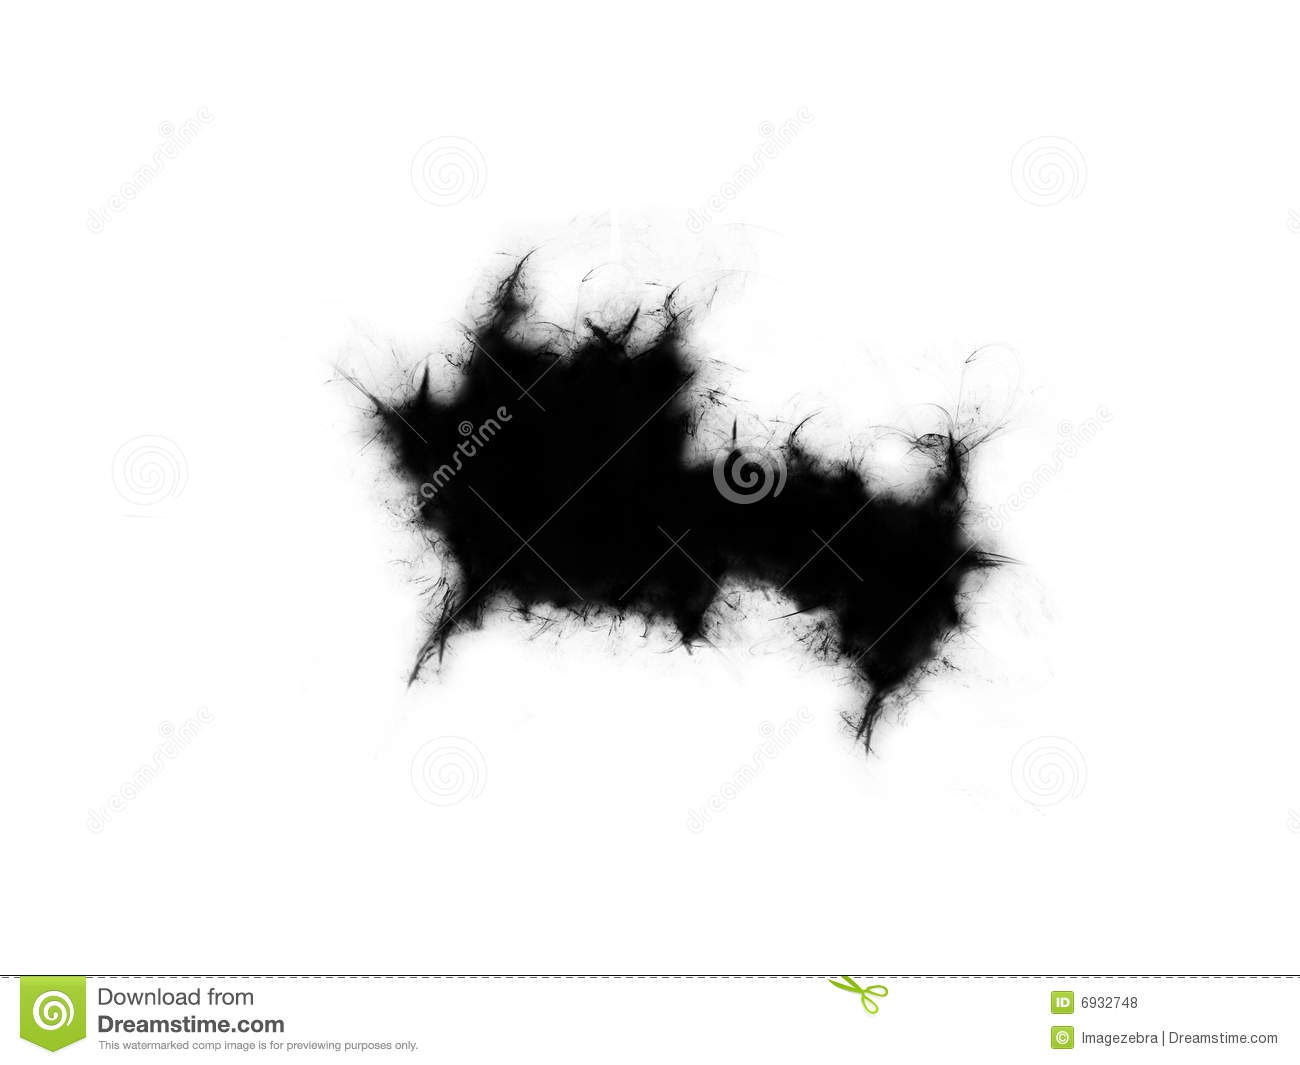 Black Hole Royalty Free Stock Photos - Image: 6932748